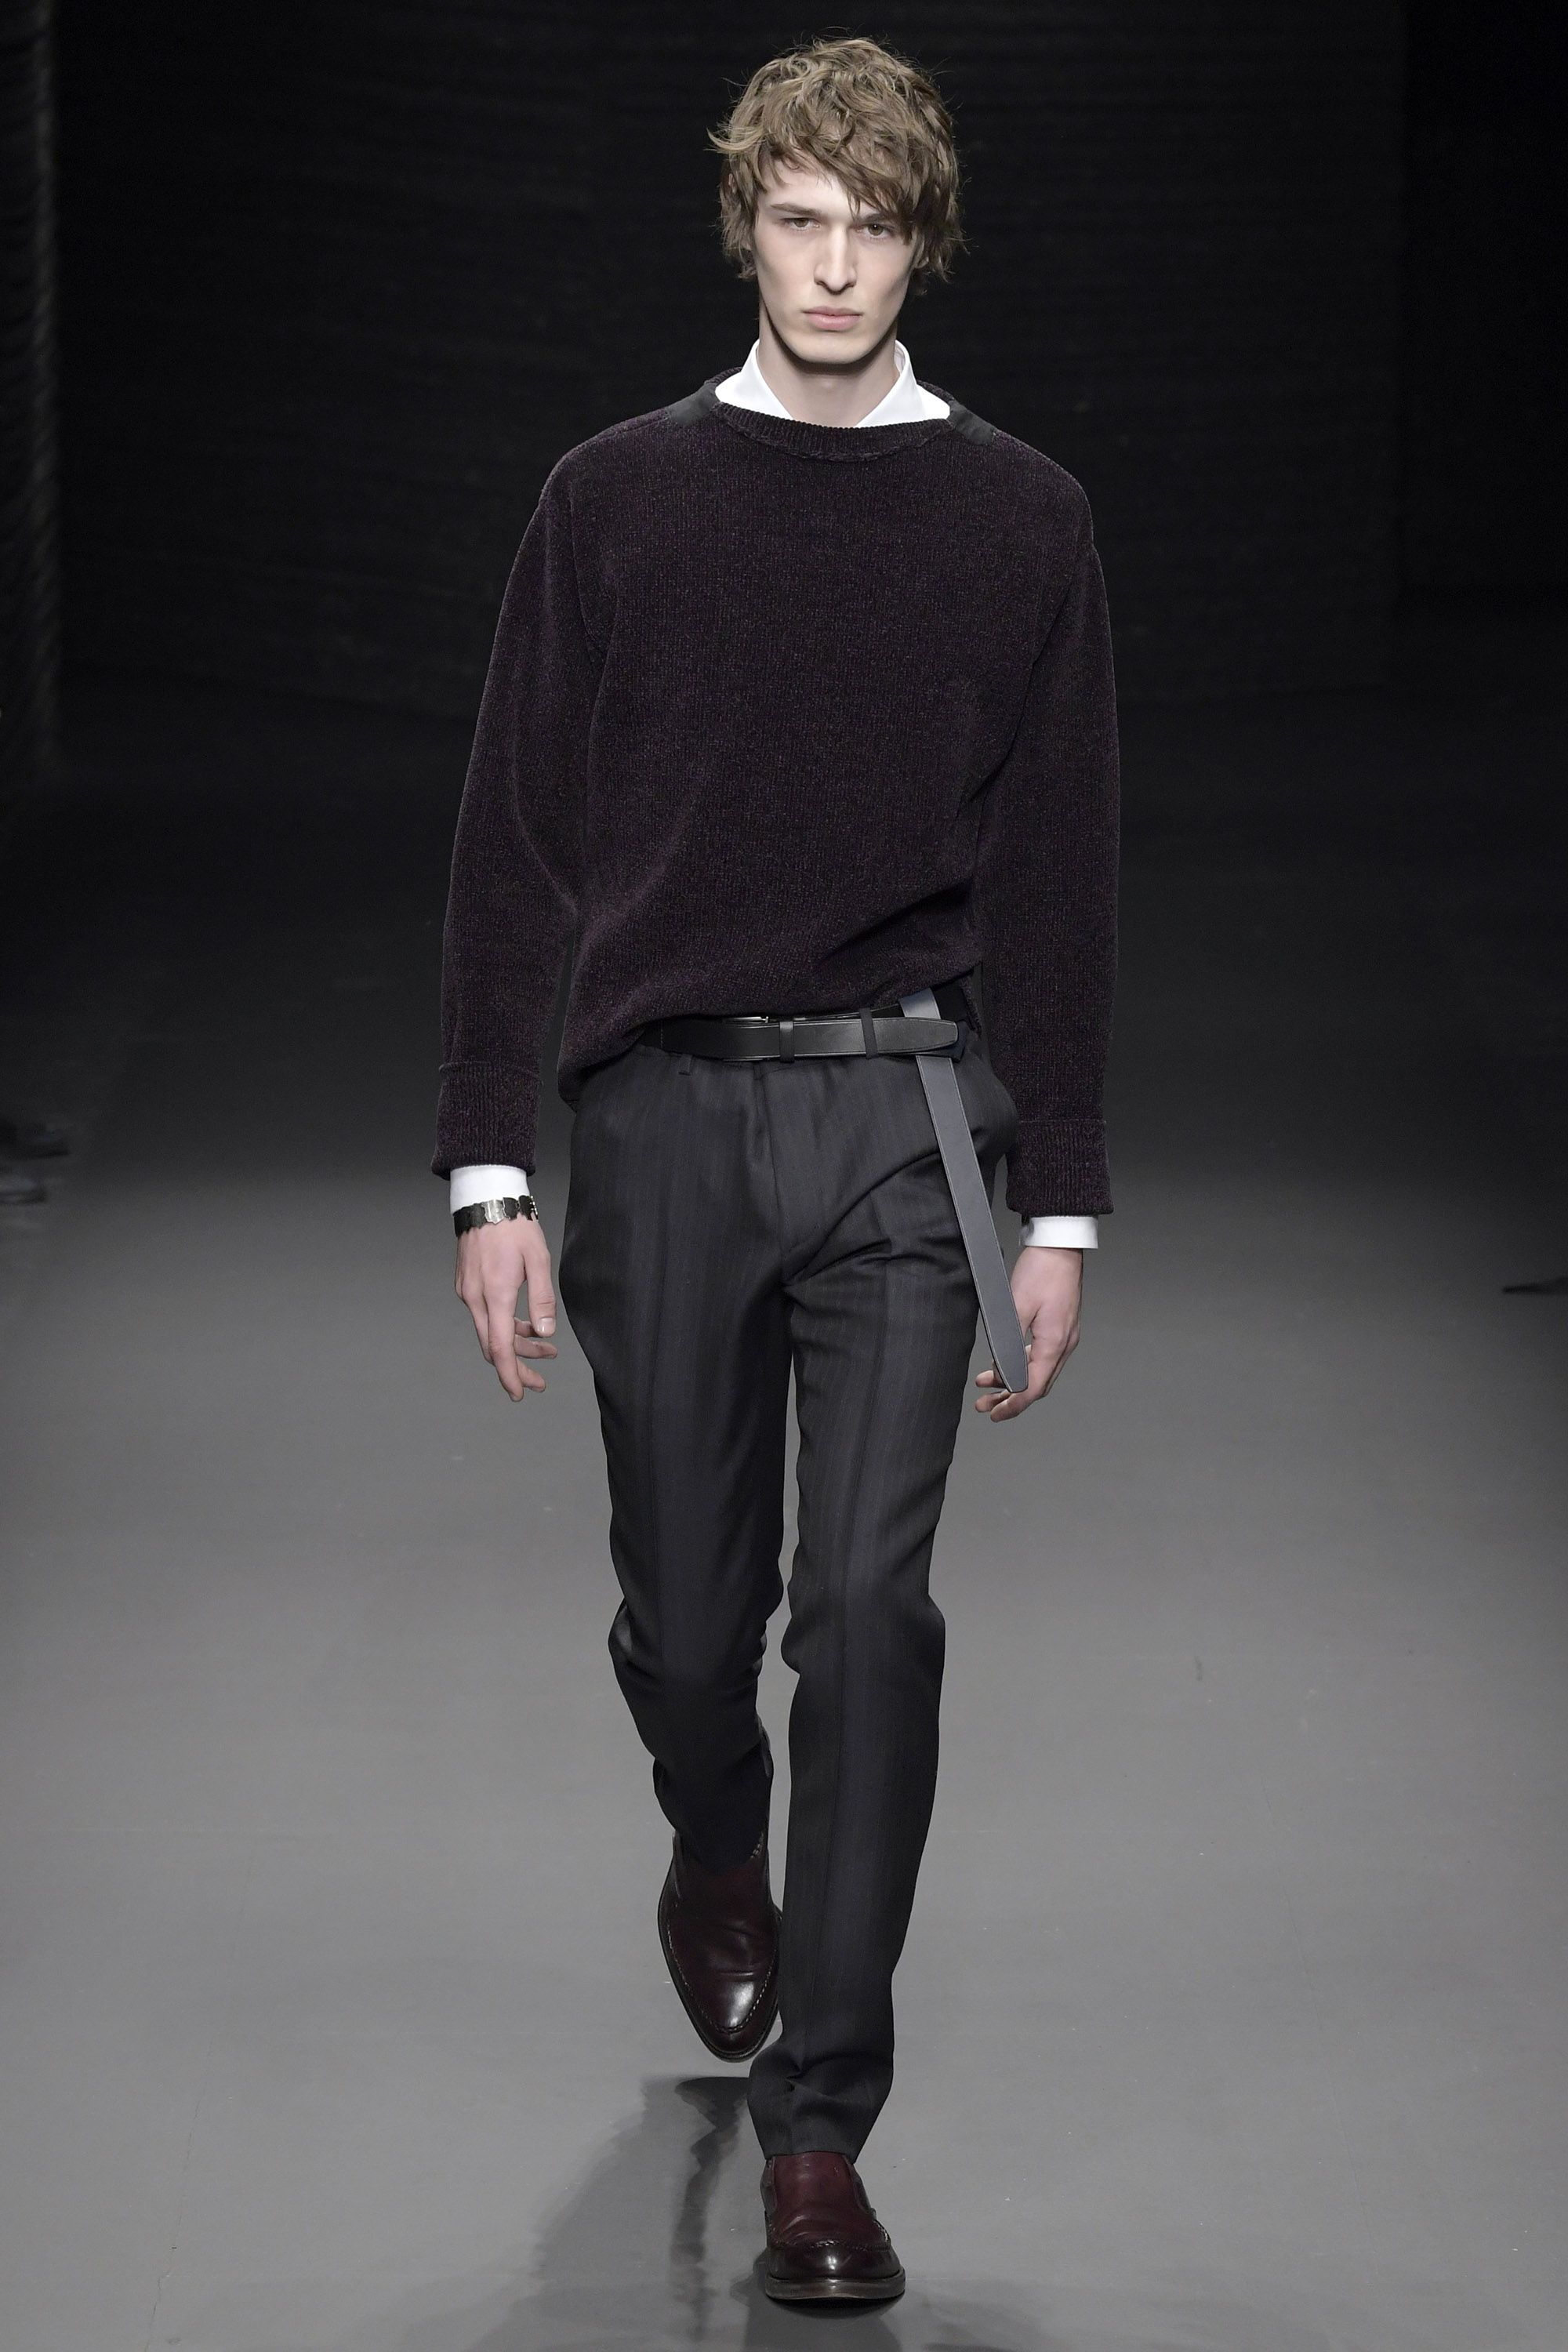 Salvatore ferragamo autumnwinter menswear winter